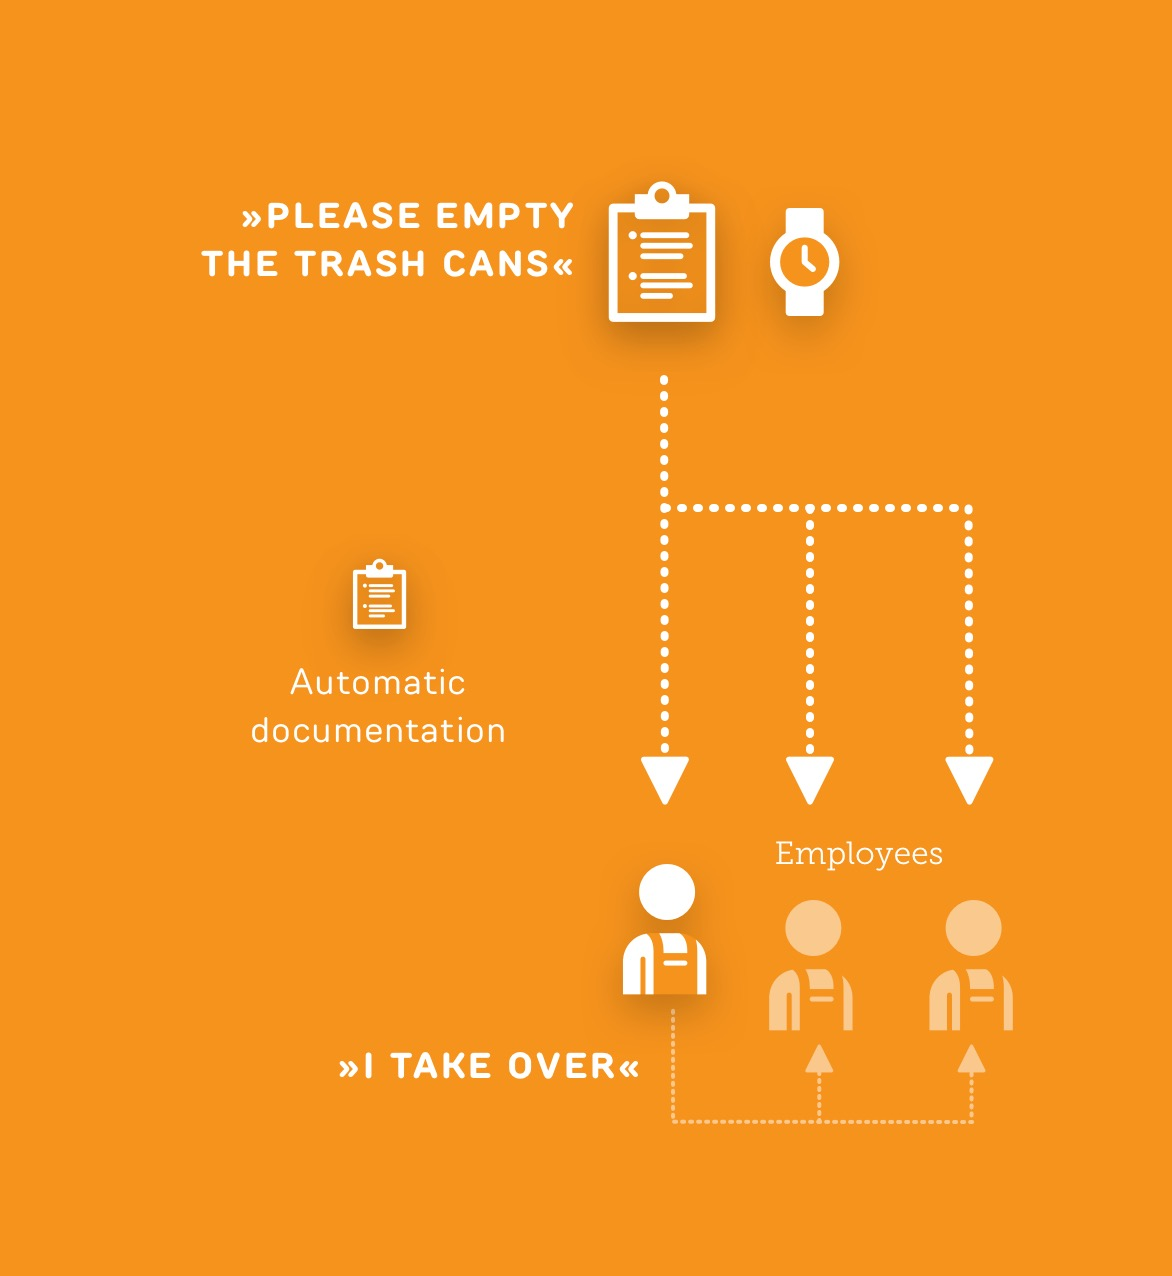 Task Empty trash can - Use case ReAct Retail